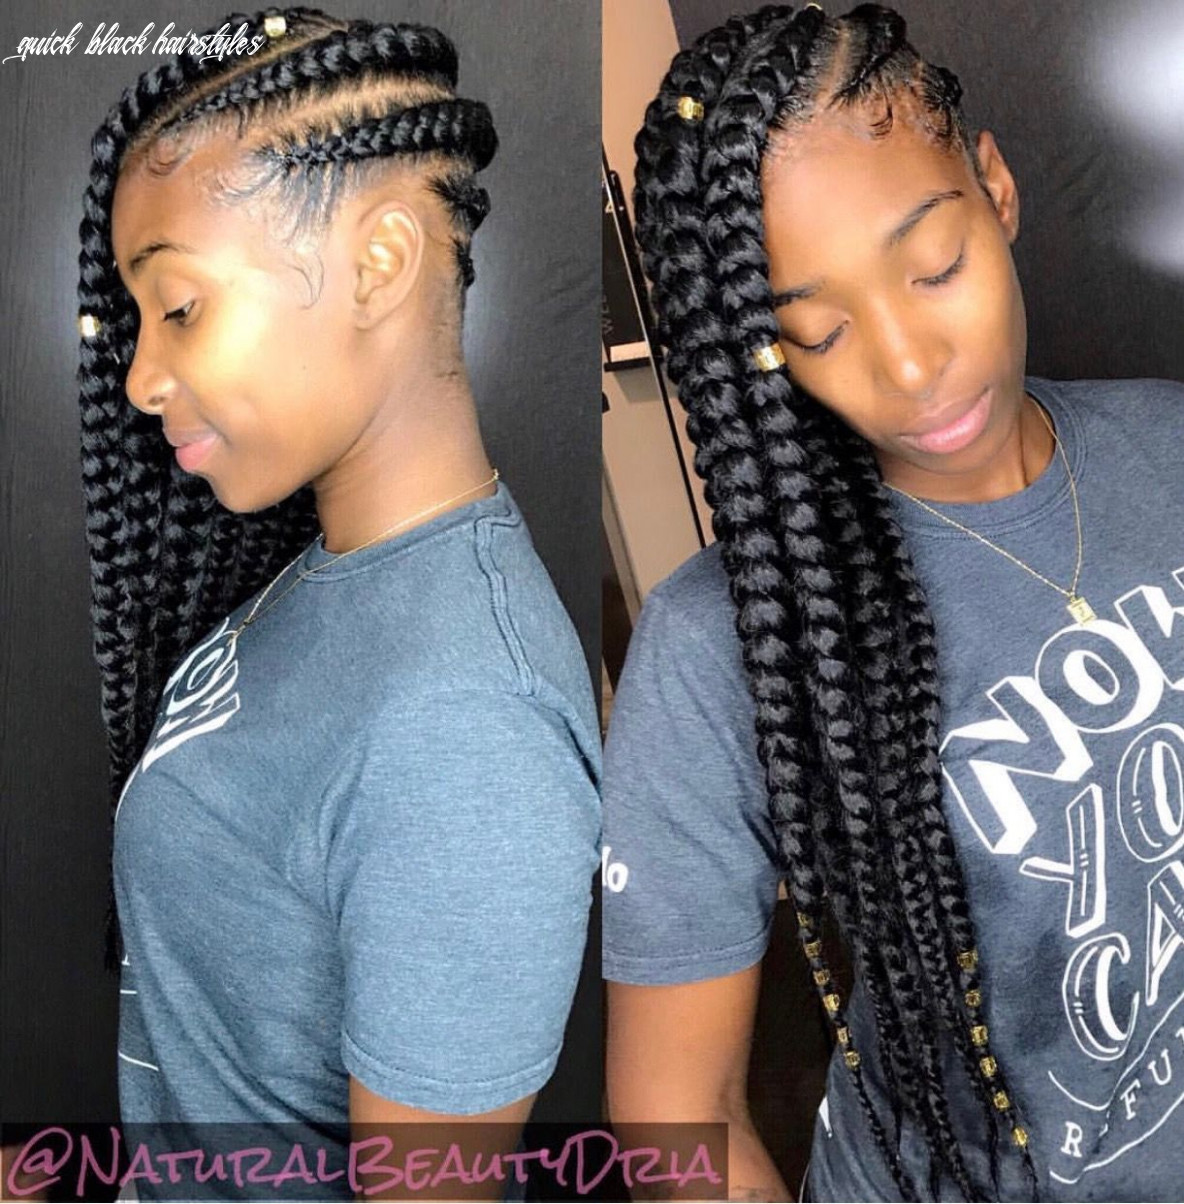 Pin on hairstyles quick black hairstyles